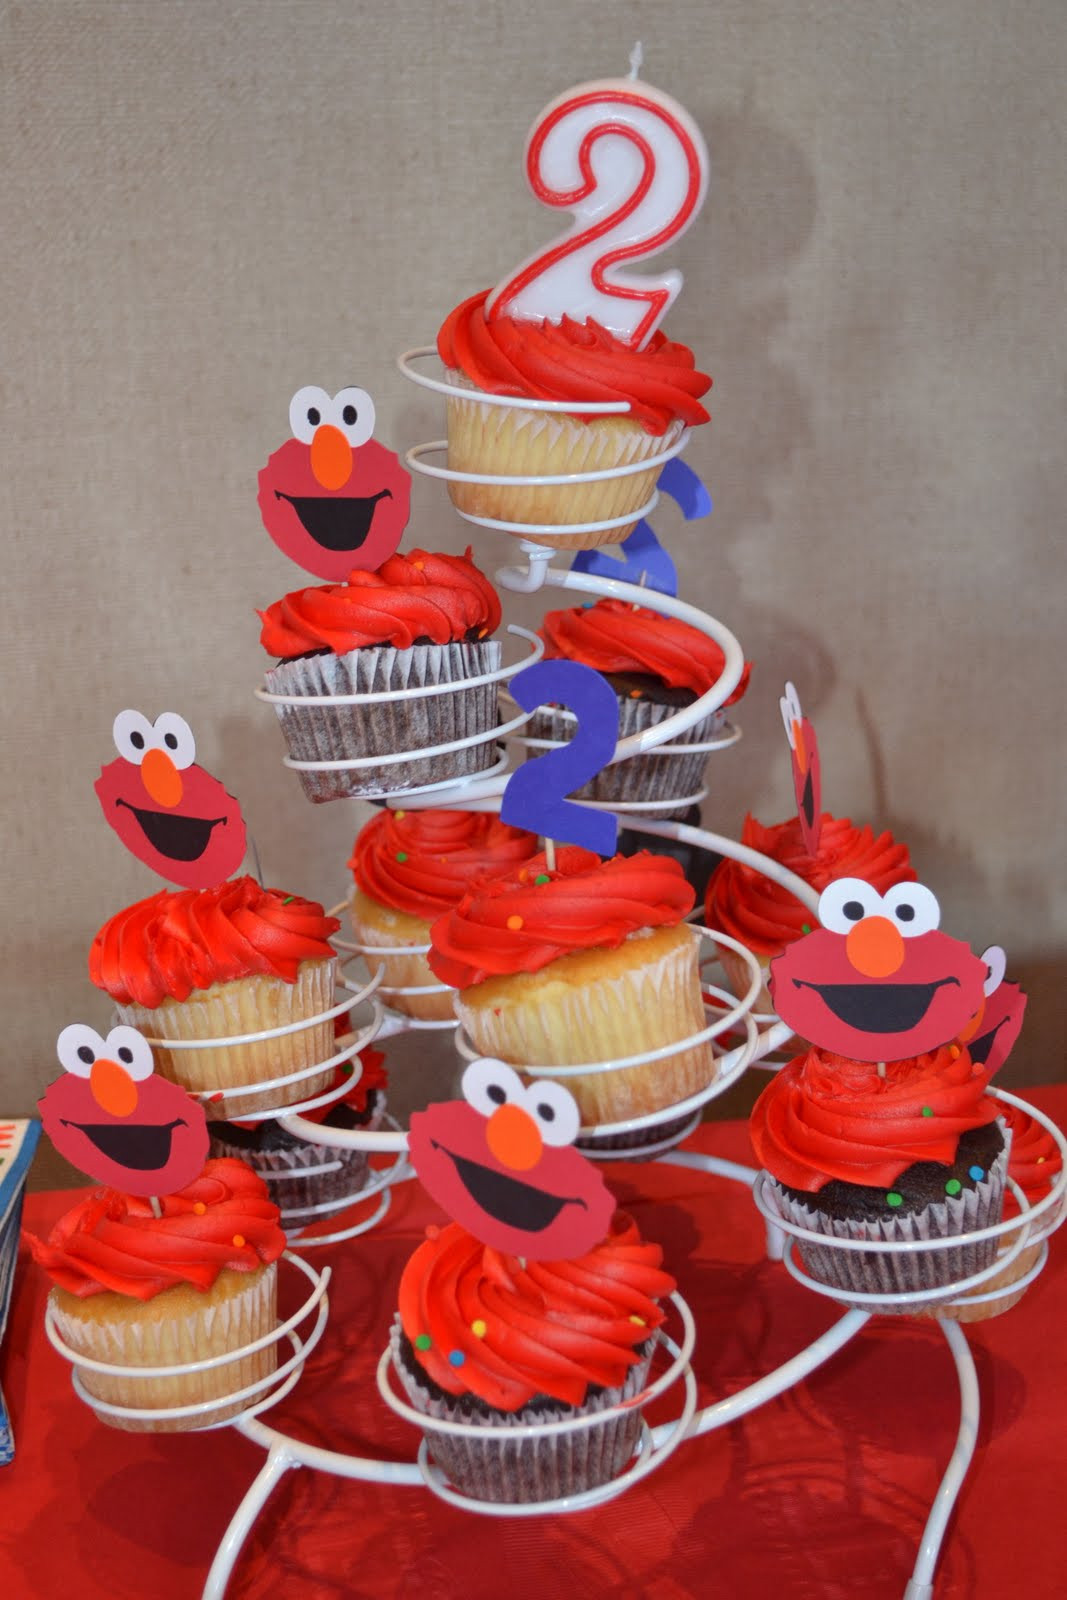 Best ideas about Elmo Birthday Decorations . Save or Pin Buggy s Basement Elmo Birthday Party Now.